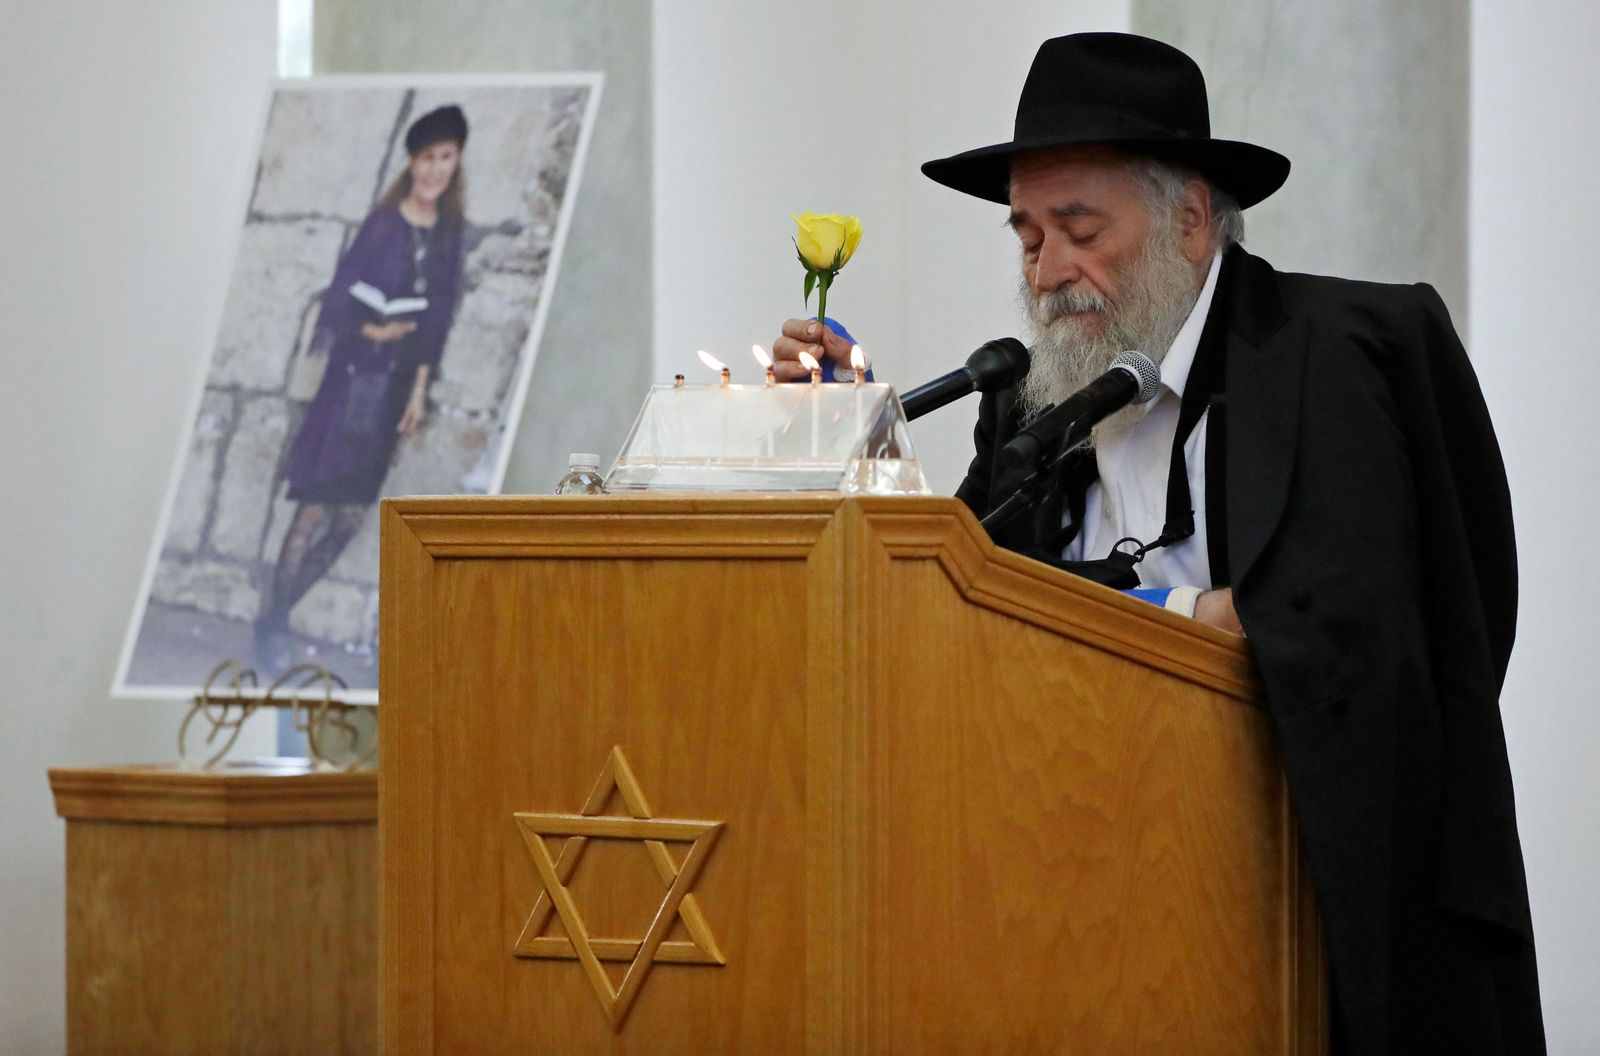 FILE - In this April 29, 2019 file photo, Yisroel Goldstein, Rabbi of Chabad of Poway, holds a yellow rose as he speaks at the funeral for Lori Kaye, who is pictured at left, in Poway, Calif. (AP Photo/Gregory Bull, File)